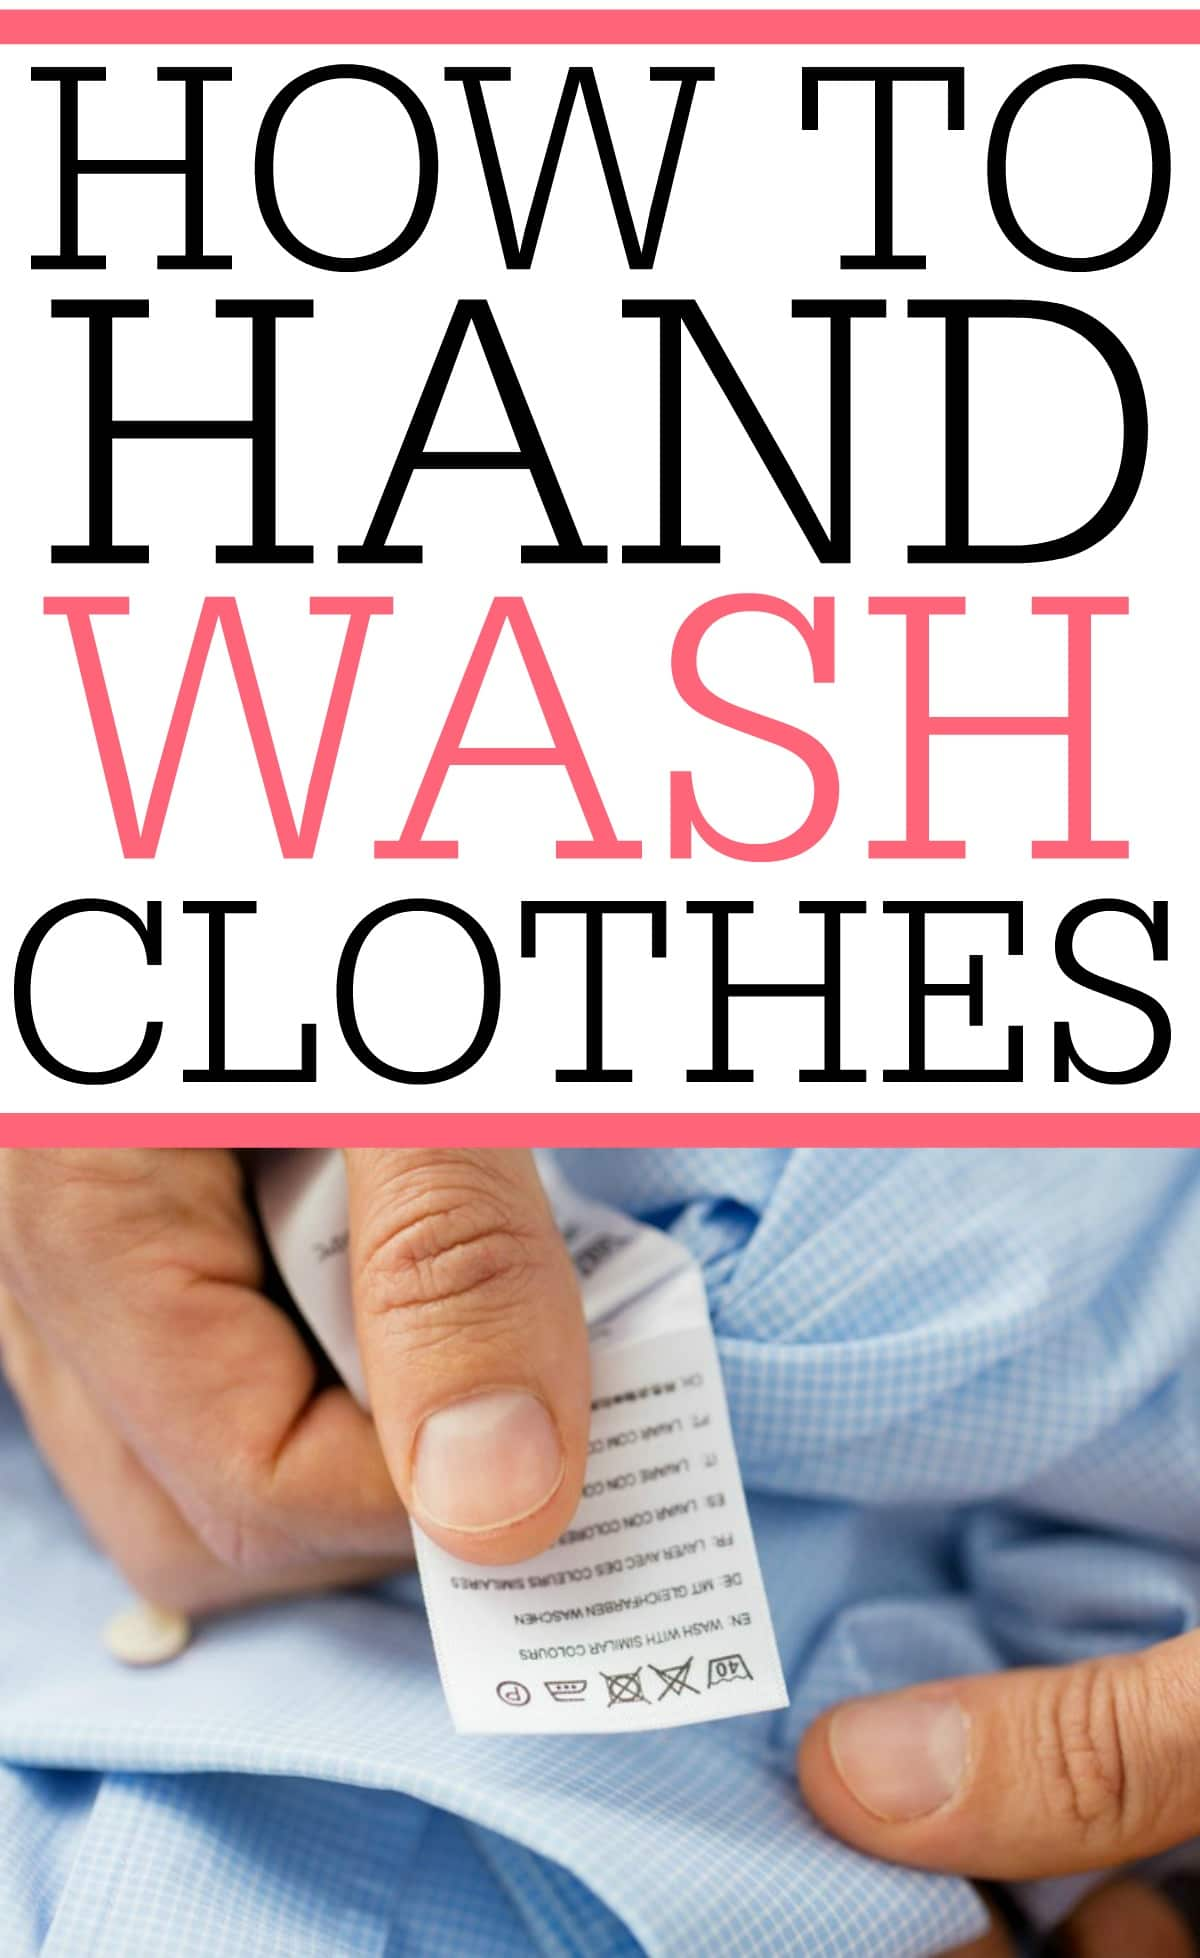 Don't skip buying that sweater. Learn how to hand wash clothes at home. It's simple to do and washing clothes by hand doesn't take all day.